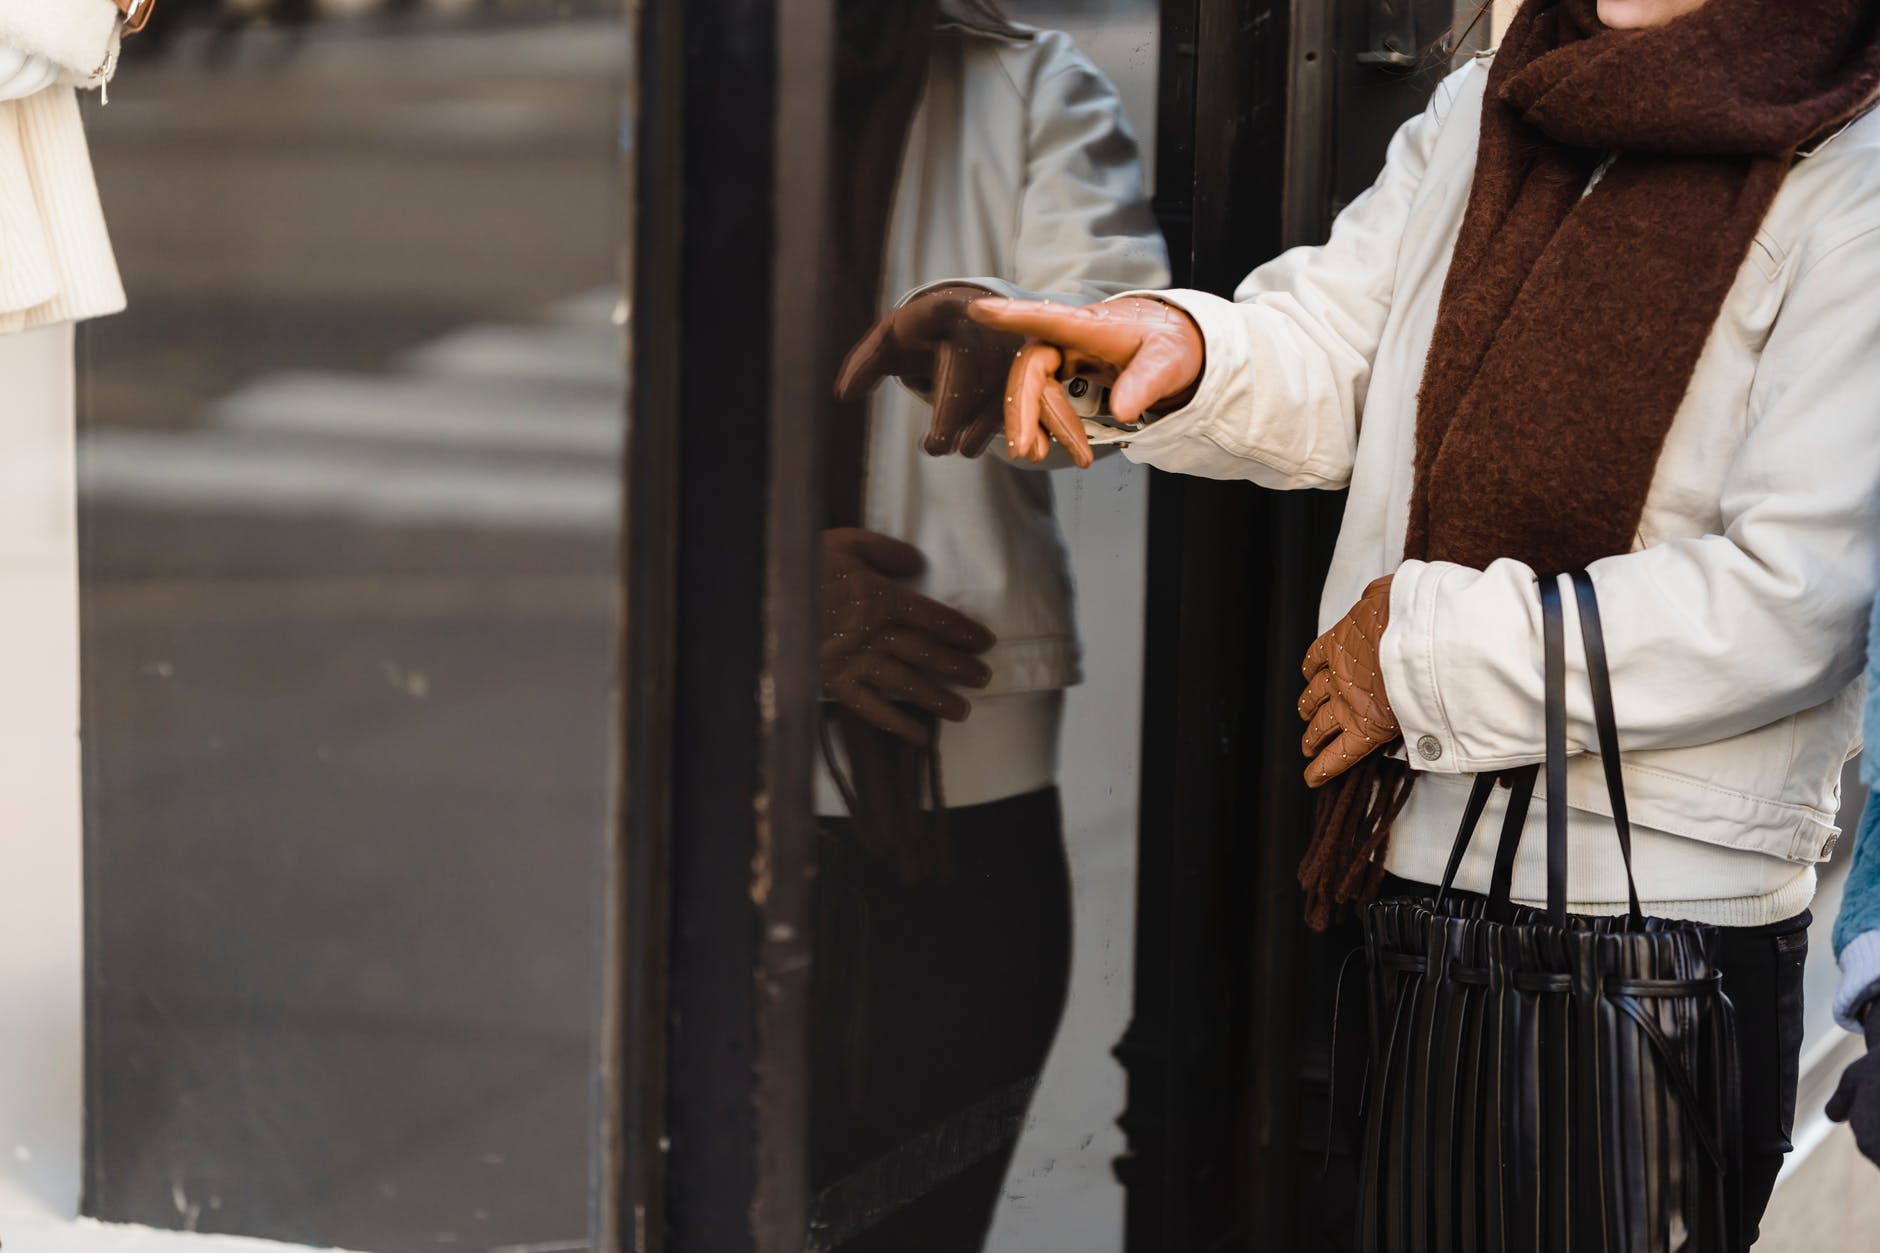 Woman with gloves pointing at storefront | Source: Pexels